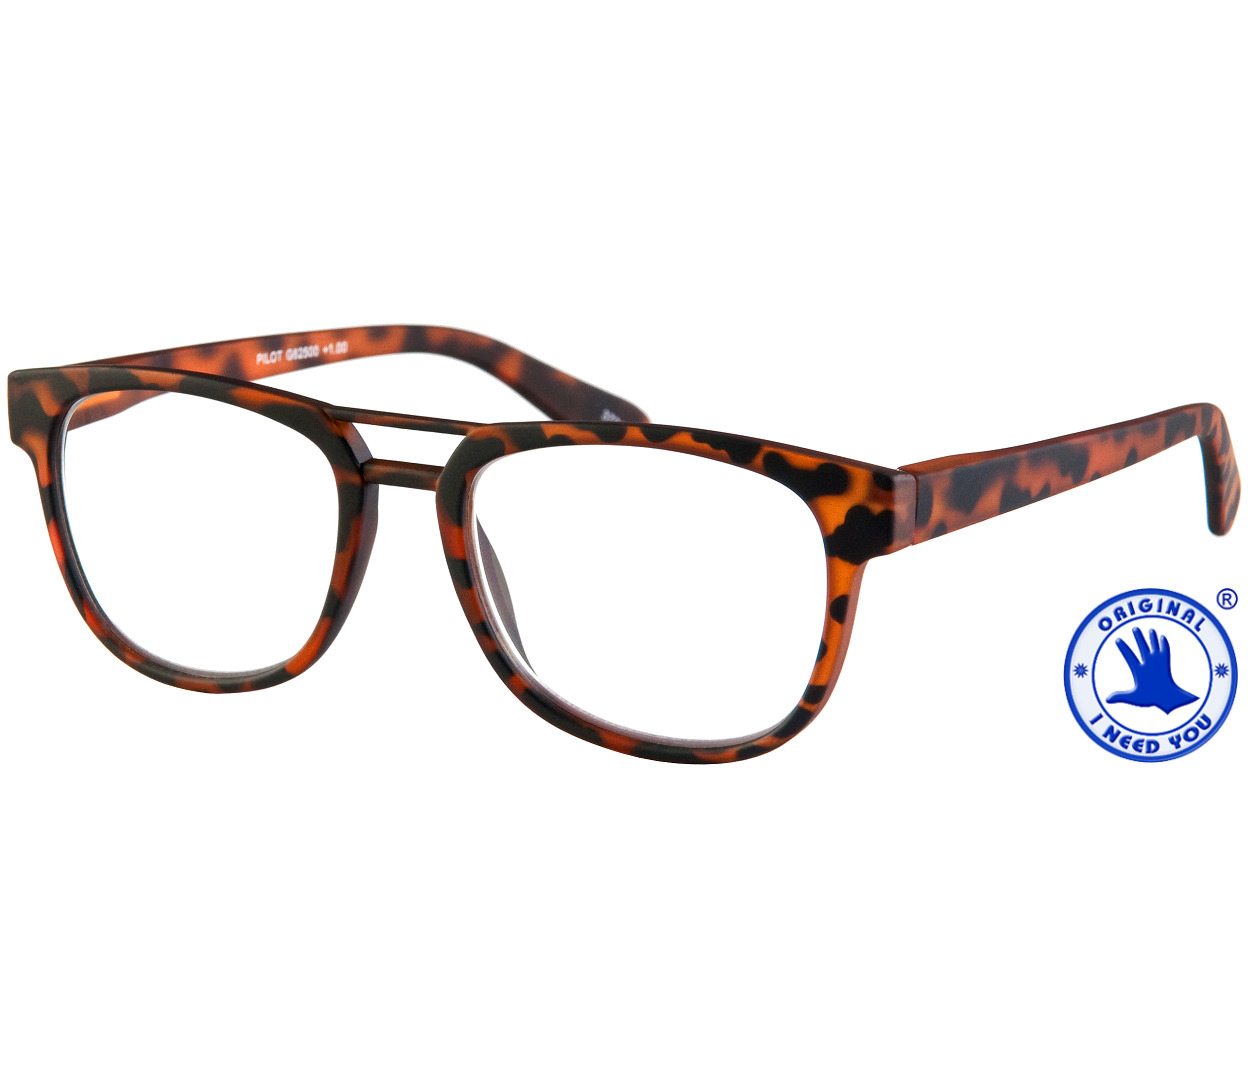 Pilot (Tortoiseshell) Retro Reading Glasses